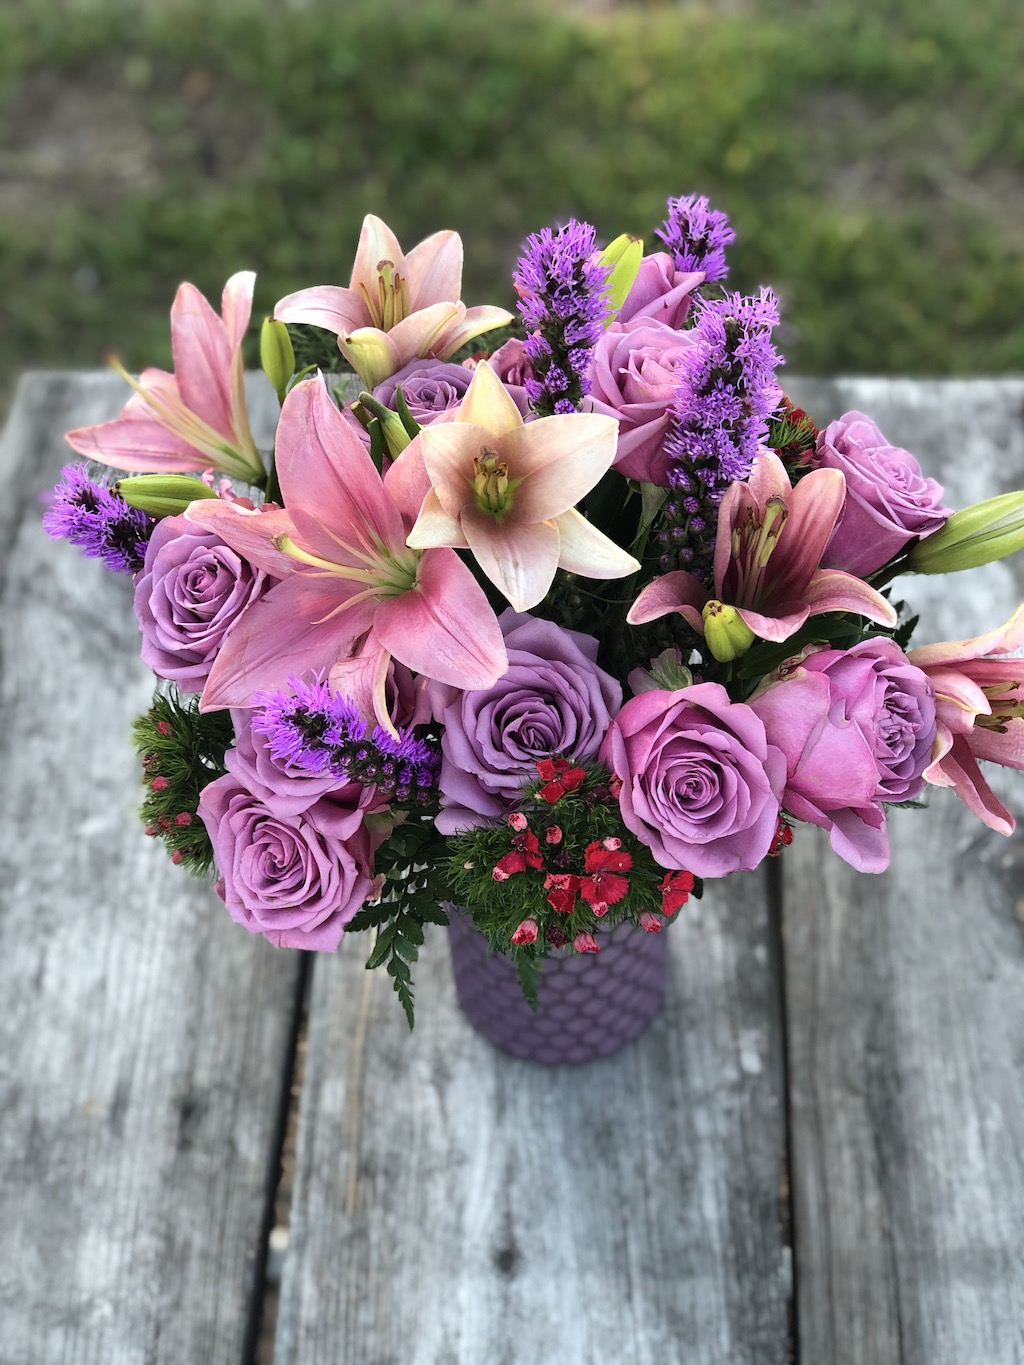 Teleflora Mother's Day bouquets are the way to celebrate the woman has been there for you through good and bad events and given countless hugs and support.